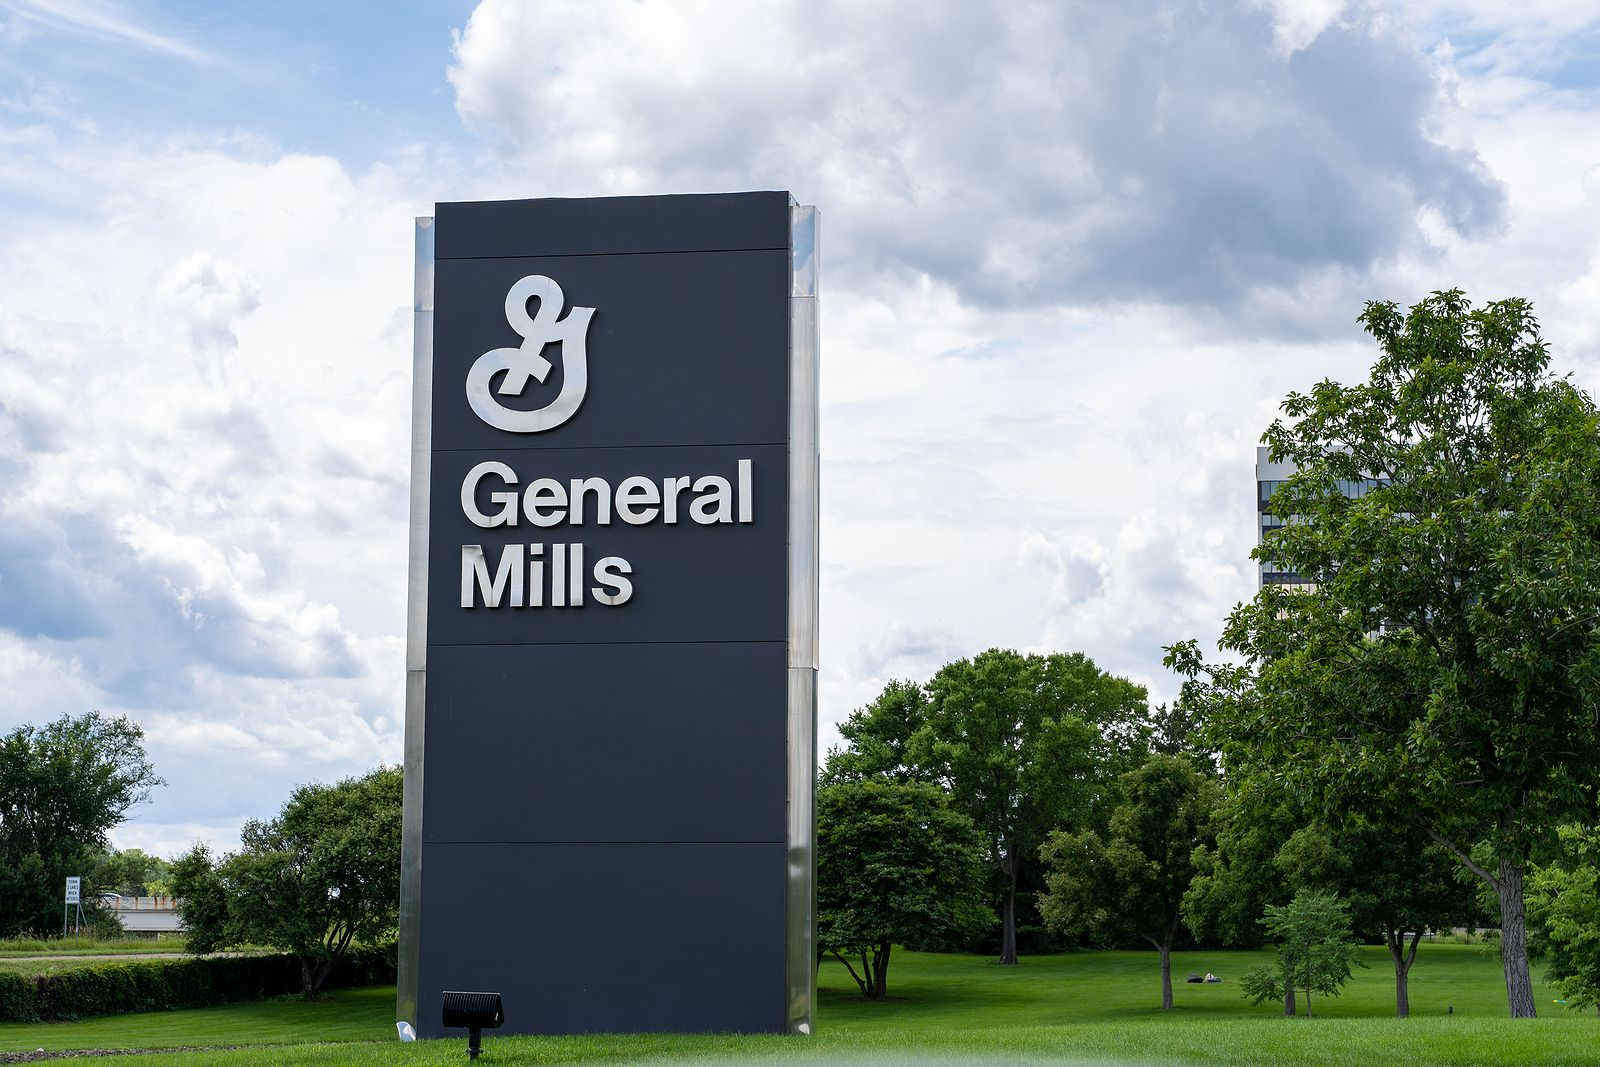 General Mills GIS stock news and analysis